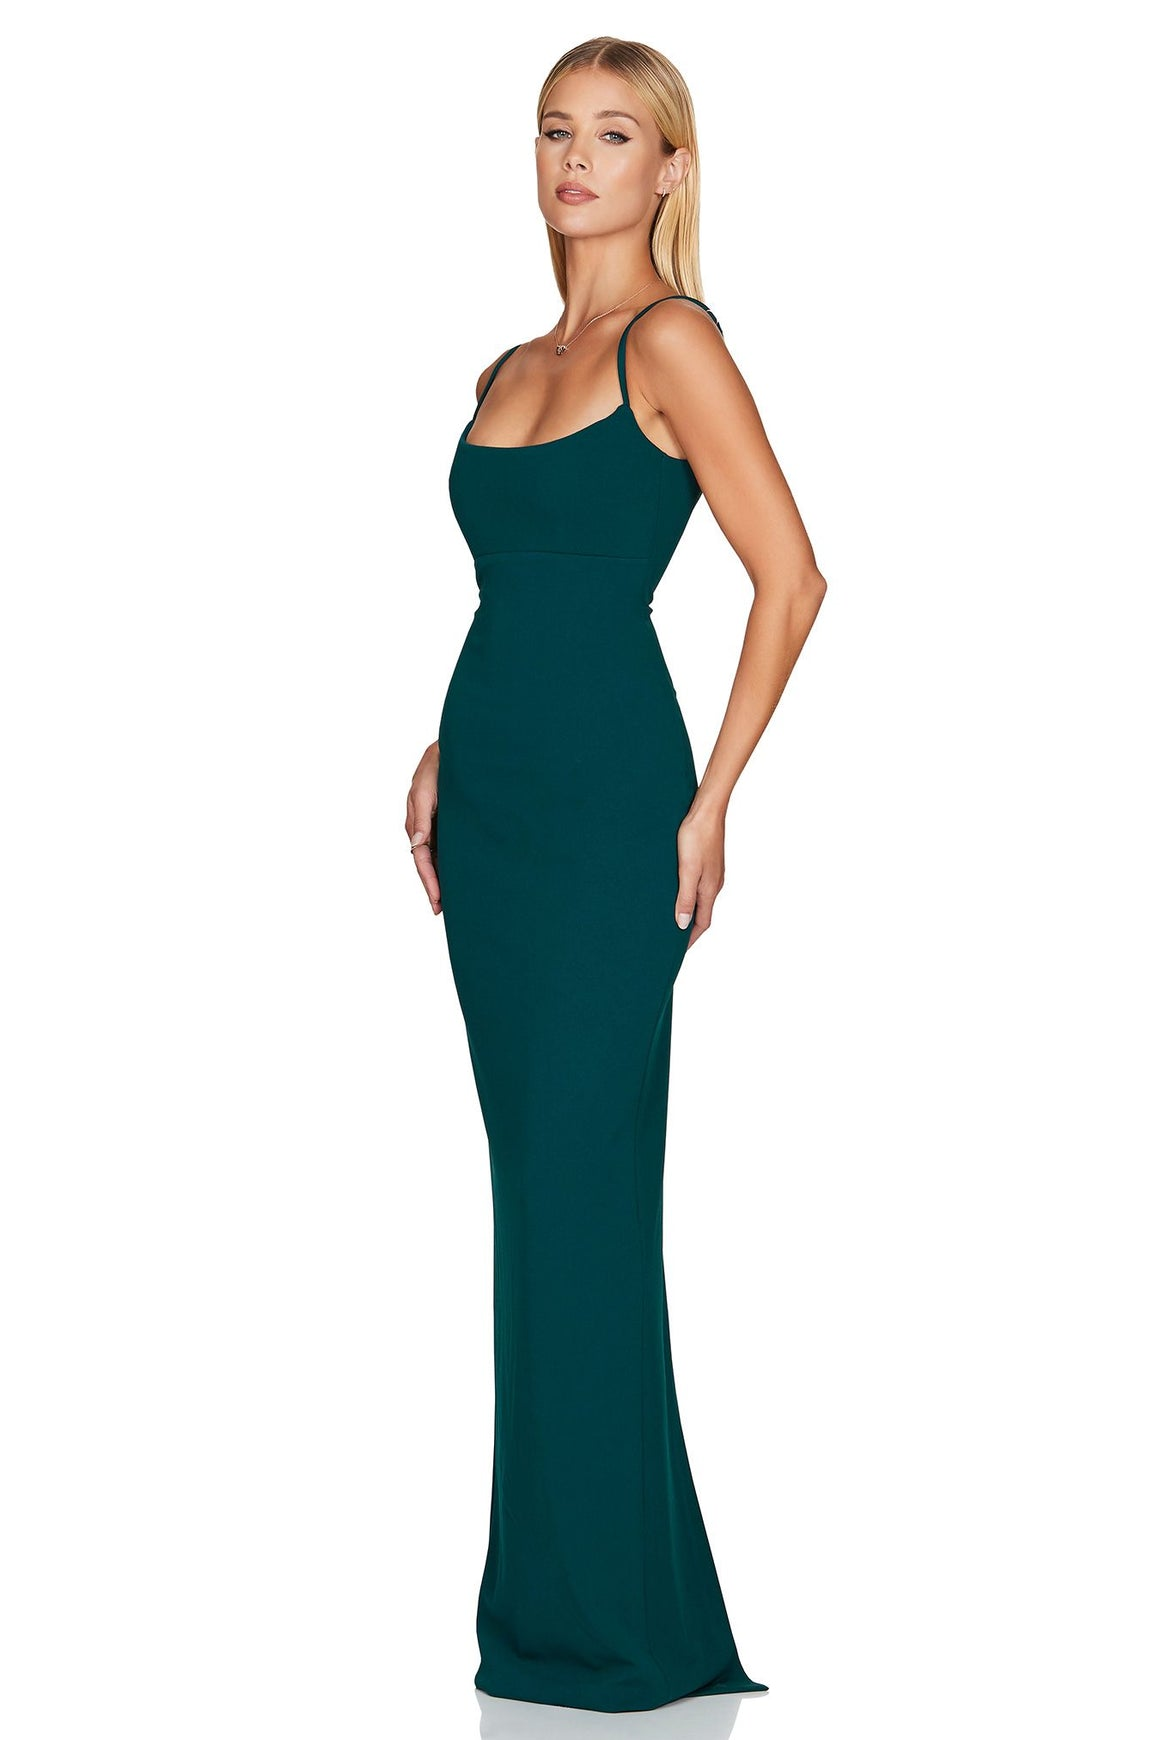 Bailey Gown - Teal